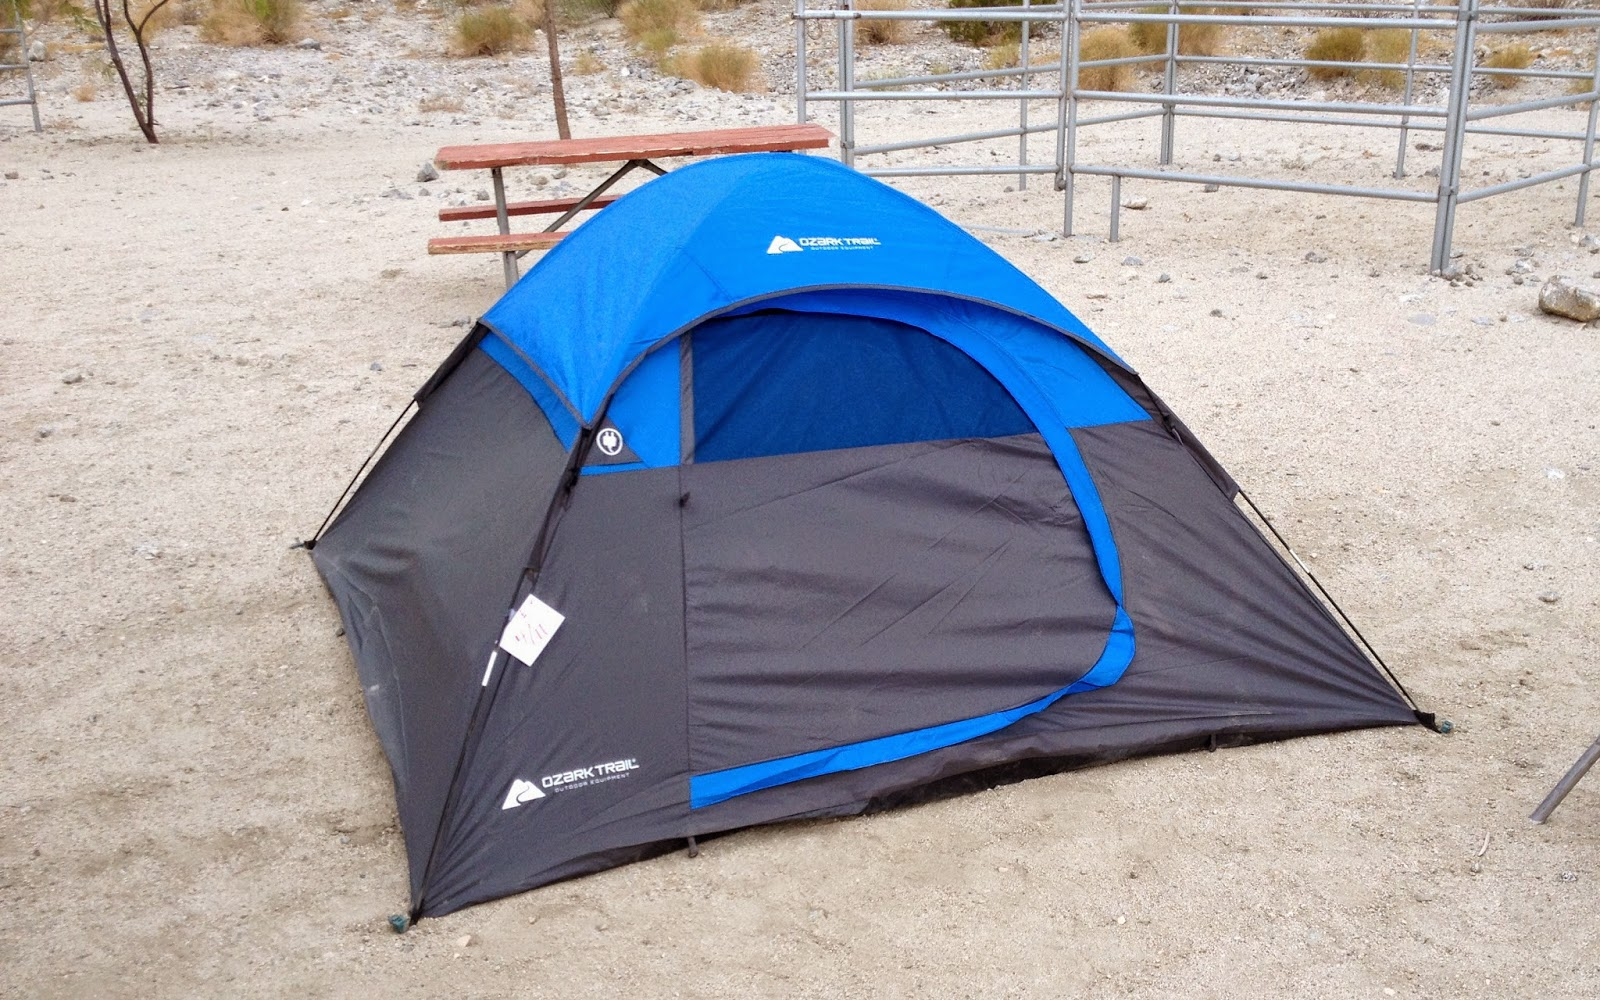 Back at Lake Cahuilla and a New Ozark Trail Tent & WC Welding; Metal Work Banjo Camping some food but Mostly ...